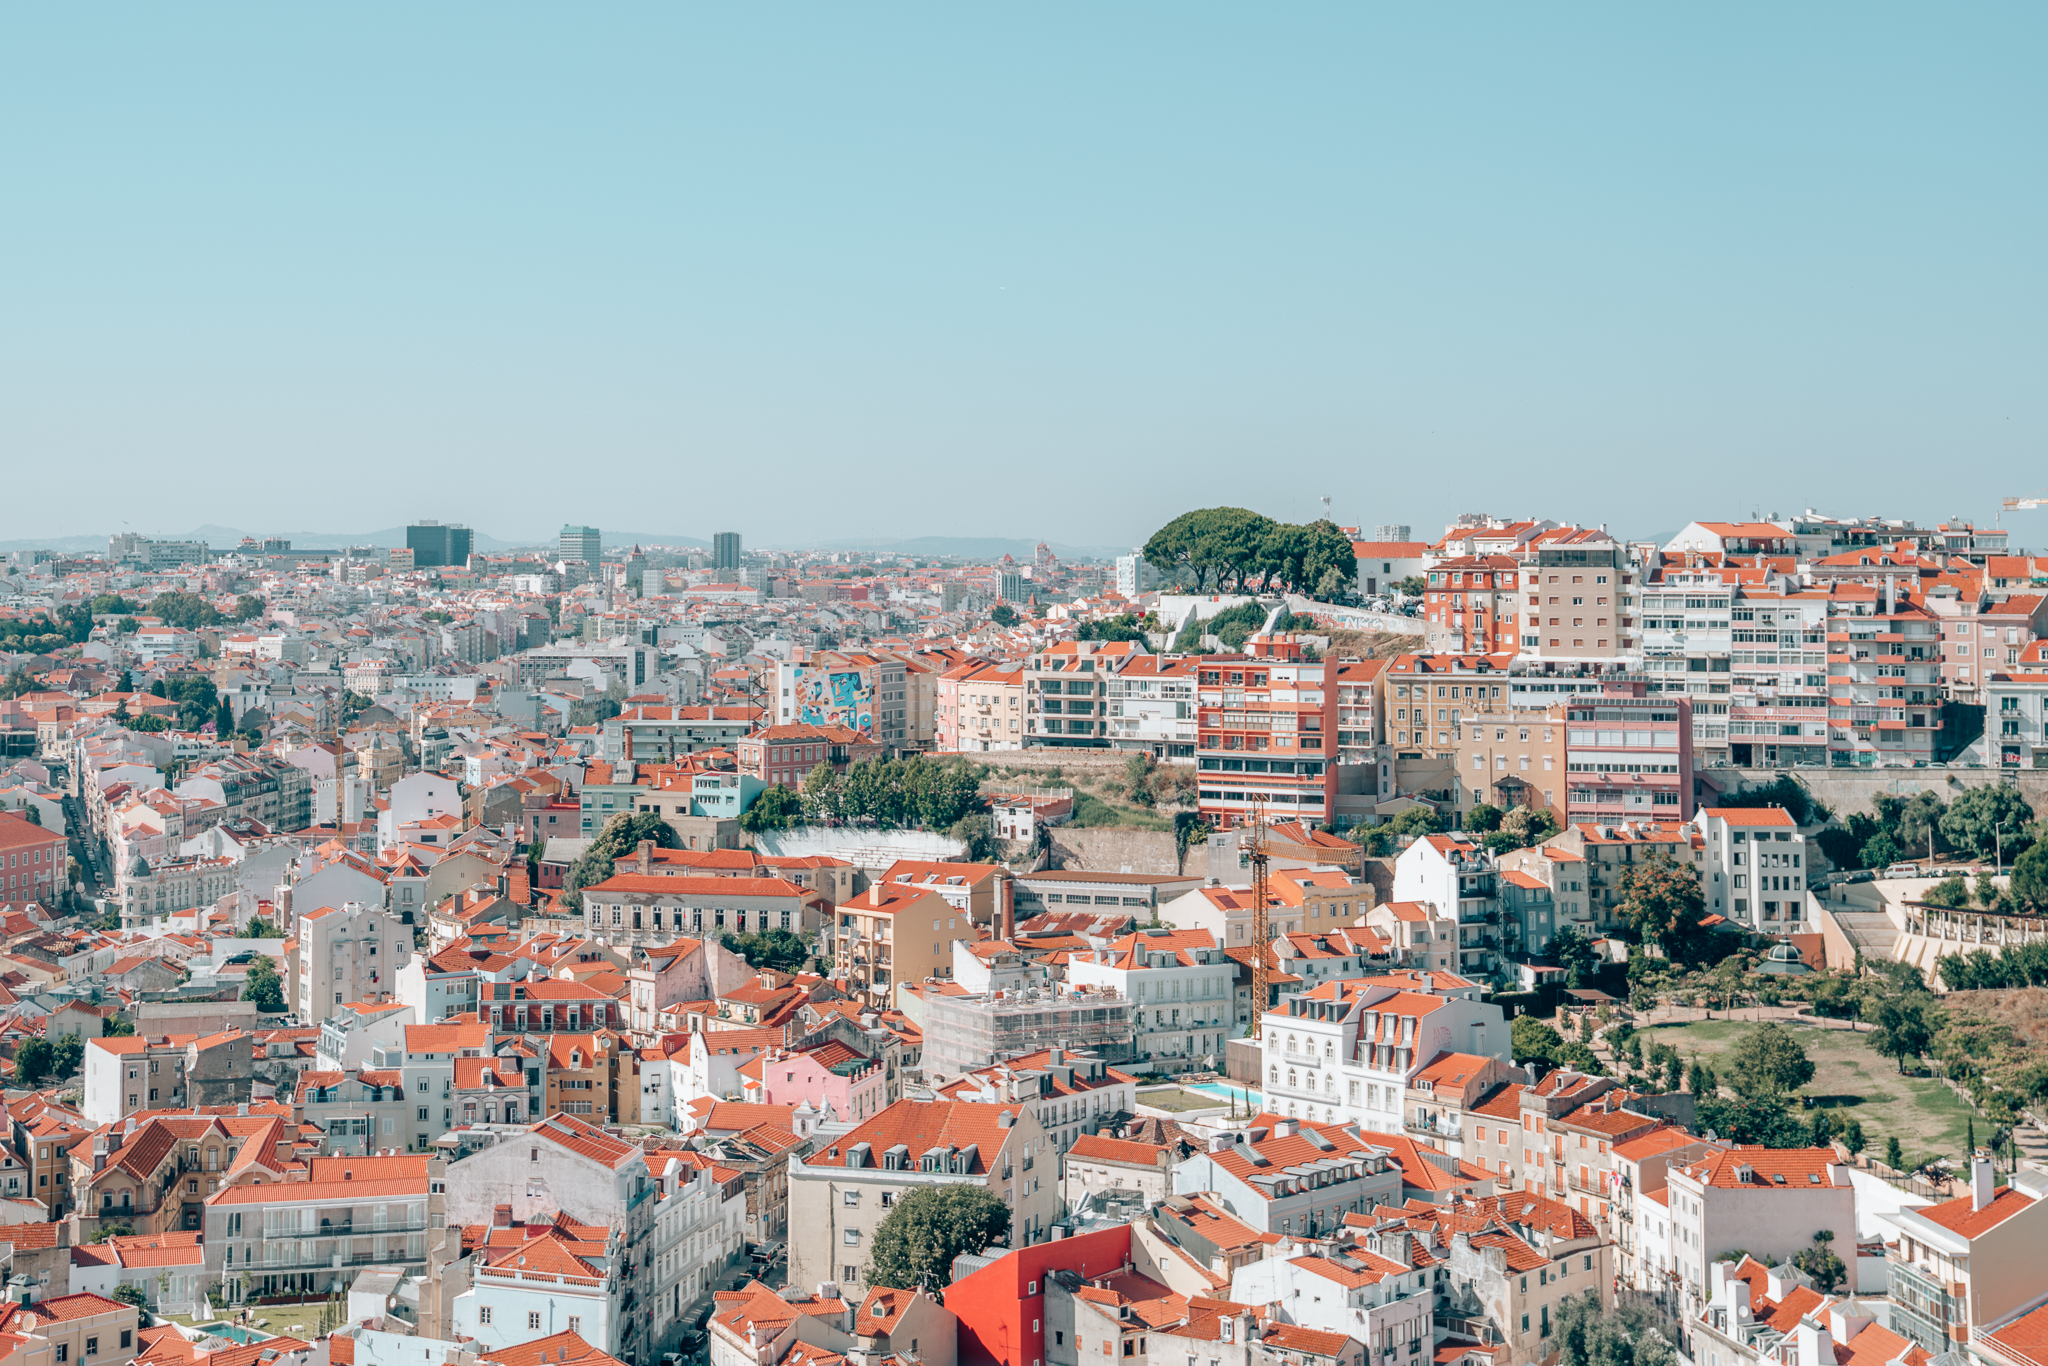 Overlooking the city of Lisbon and its famous orange rooftops from Miradouros